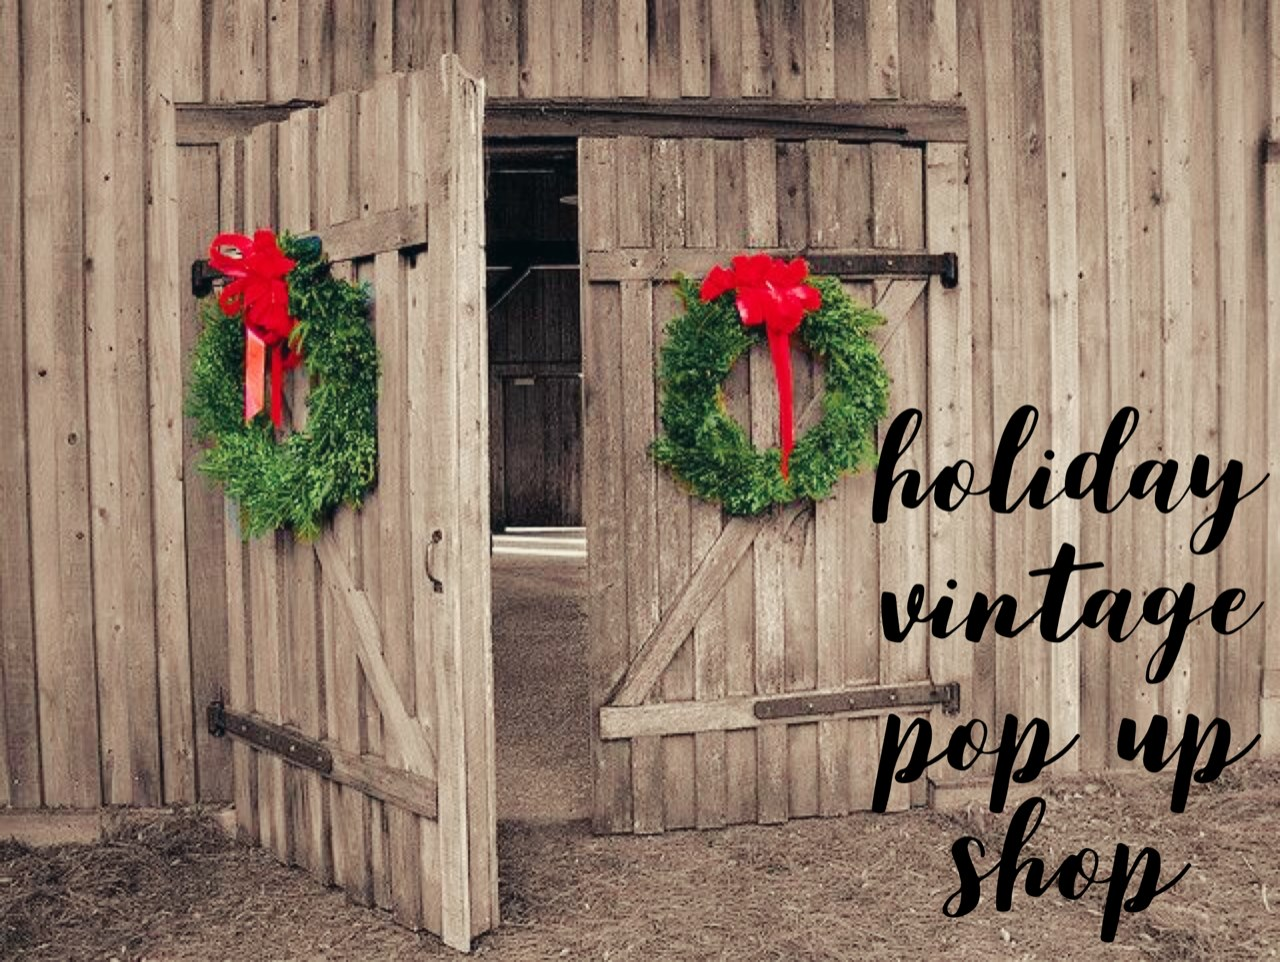 Holiday Vintage Pop Up Shop